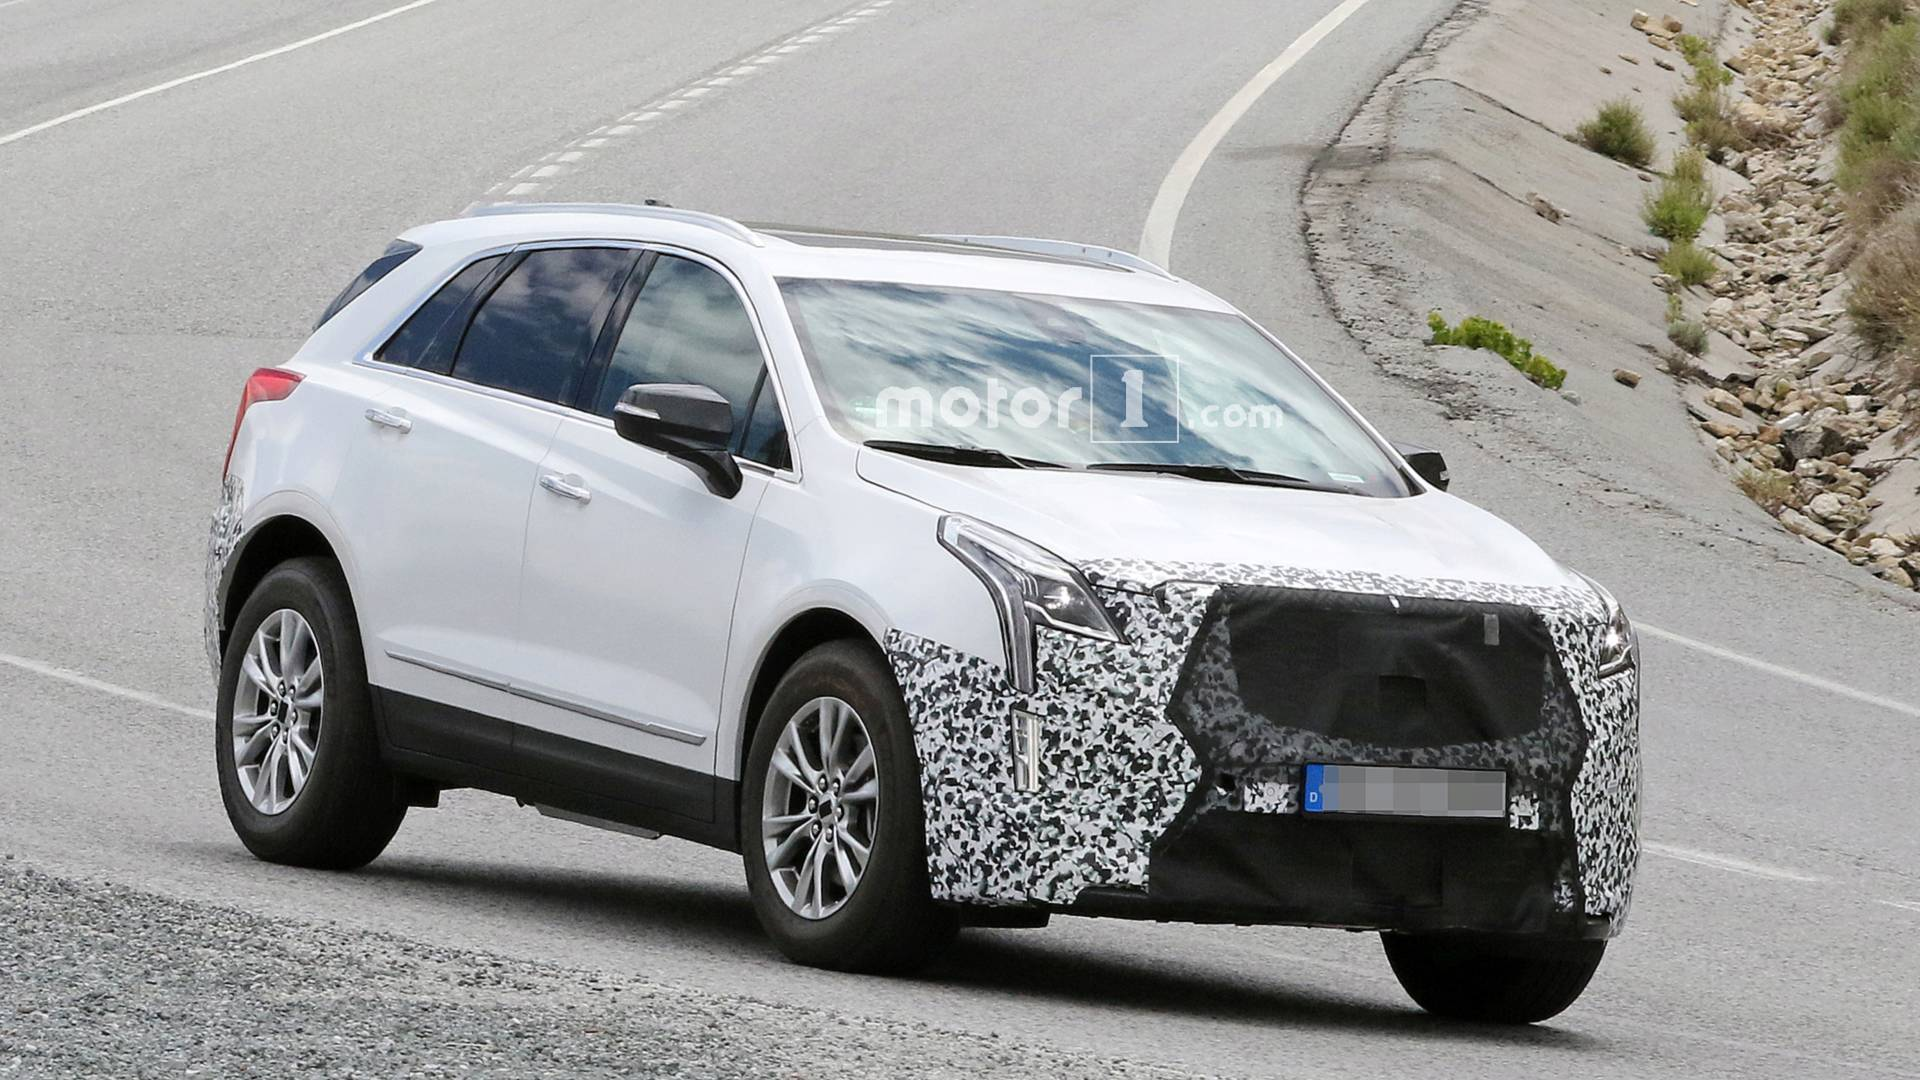 Car photographers have managed to take a series of photos of the shiny new Cadillac XT5 running some initial road tests ahead of its premiere in early 2019